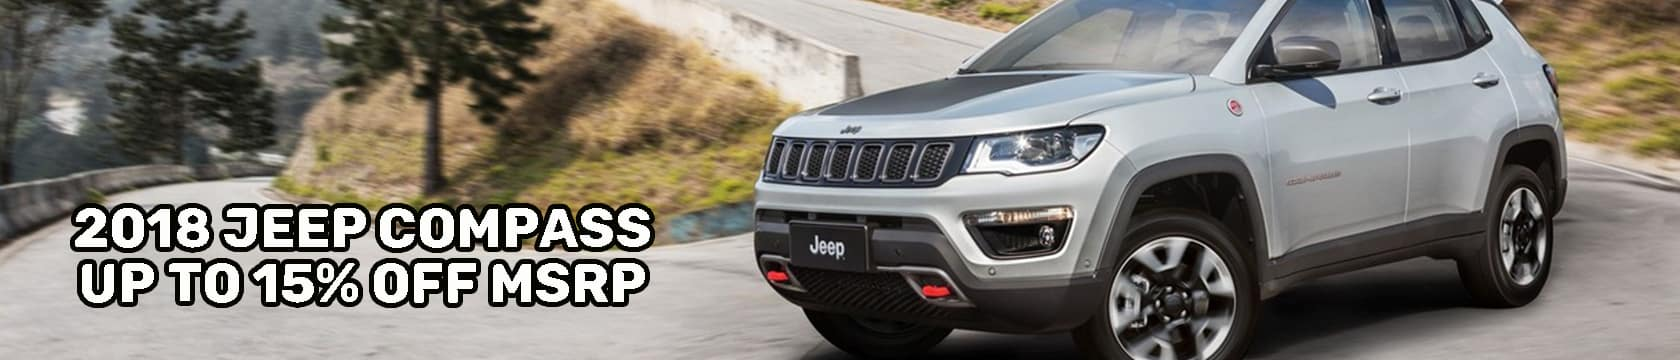 2018 Jeep Compass Banner 1